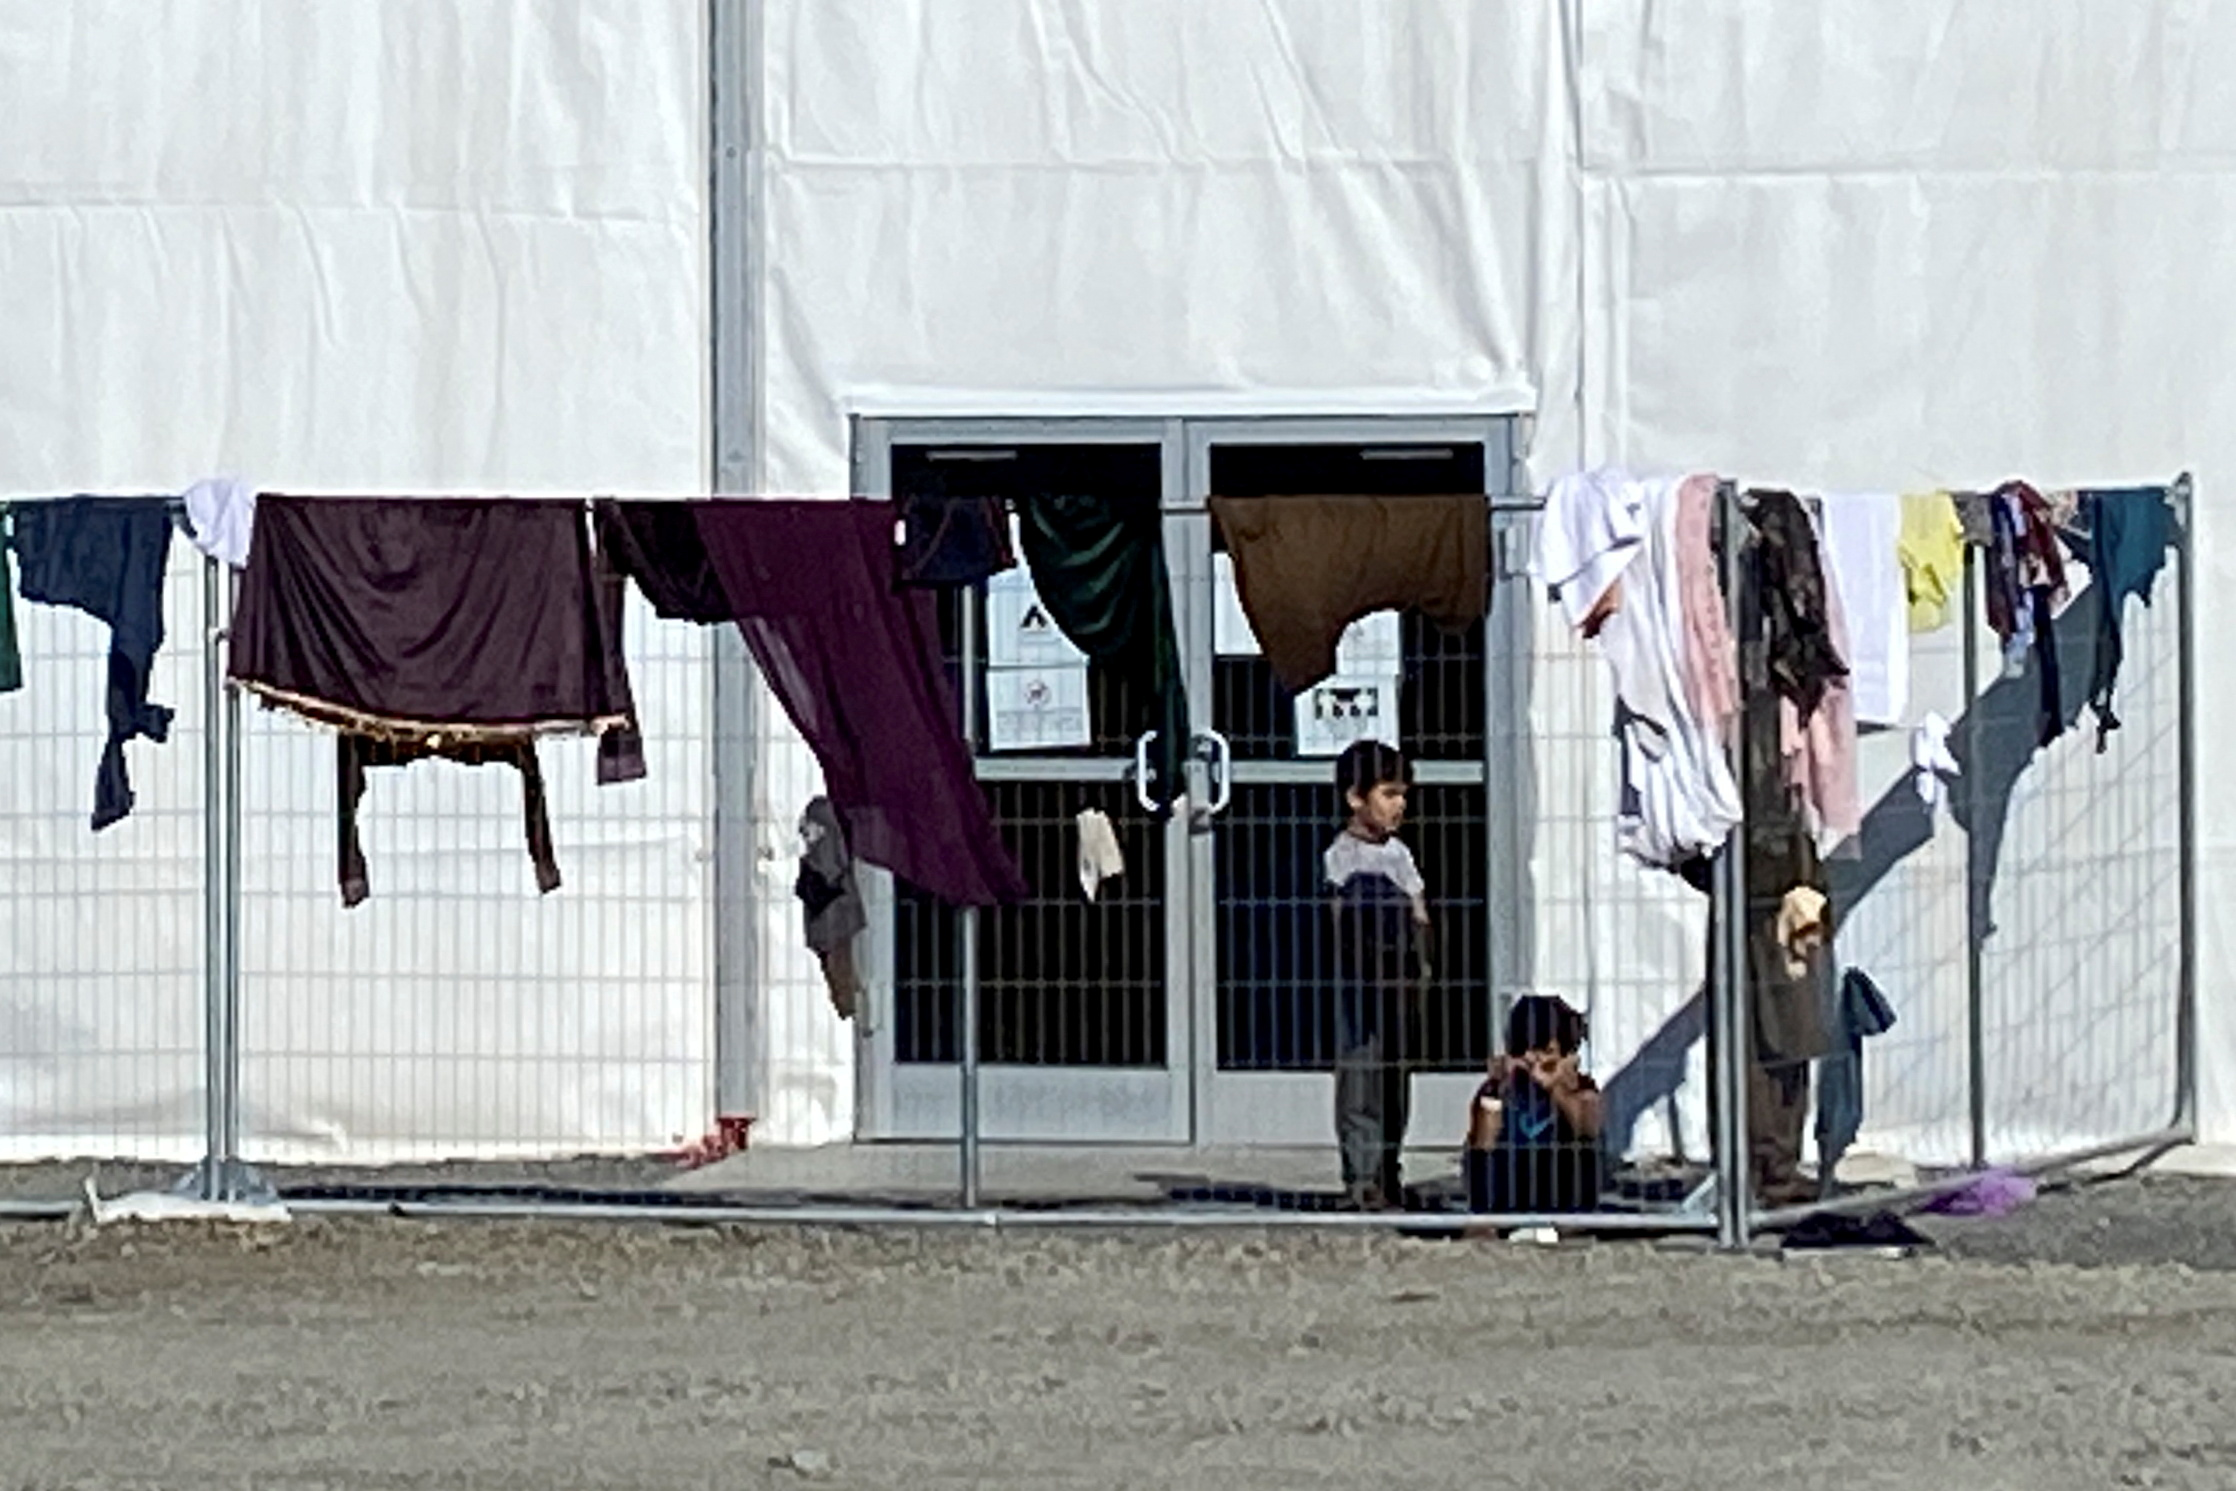 A structure housing Afghan evacuees is seen at Joint Base McGuire-Dix-Lakehurst, New Jersey, which has surged housing and supplies to host more than 9,300 Afghans awaiting resettlement in the United States, September 27, 2021. REUTERS/Phil Stewart